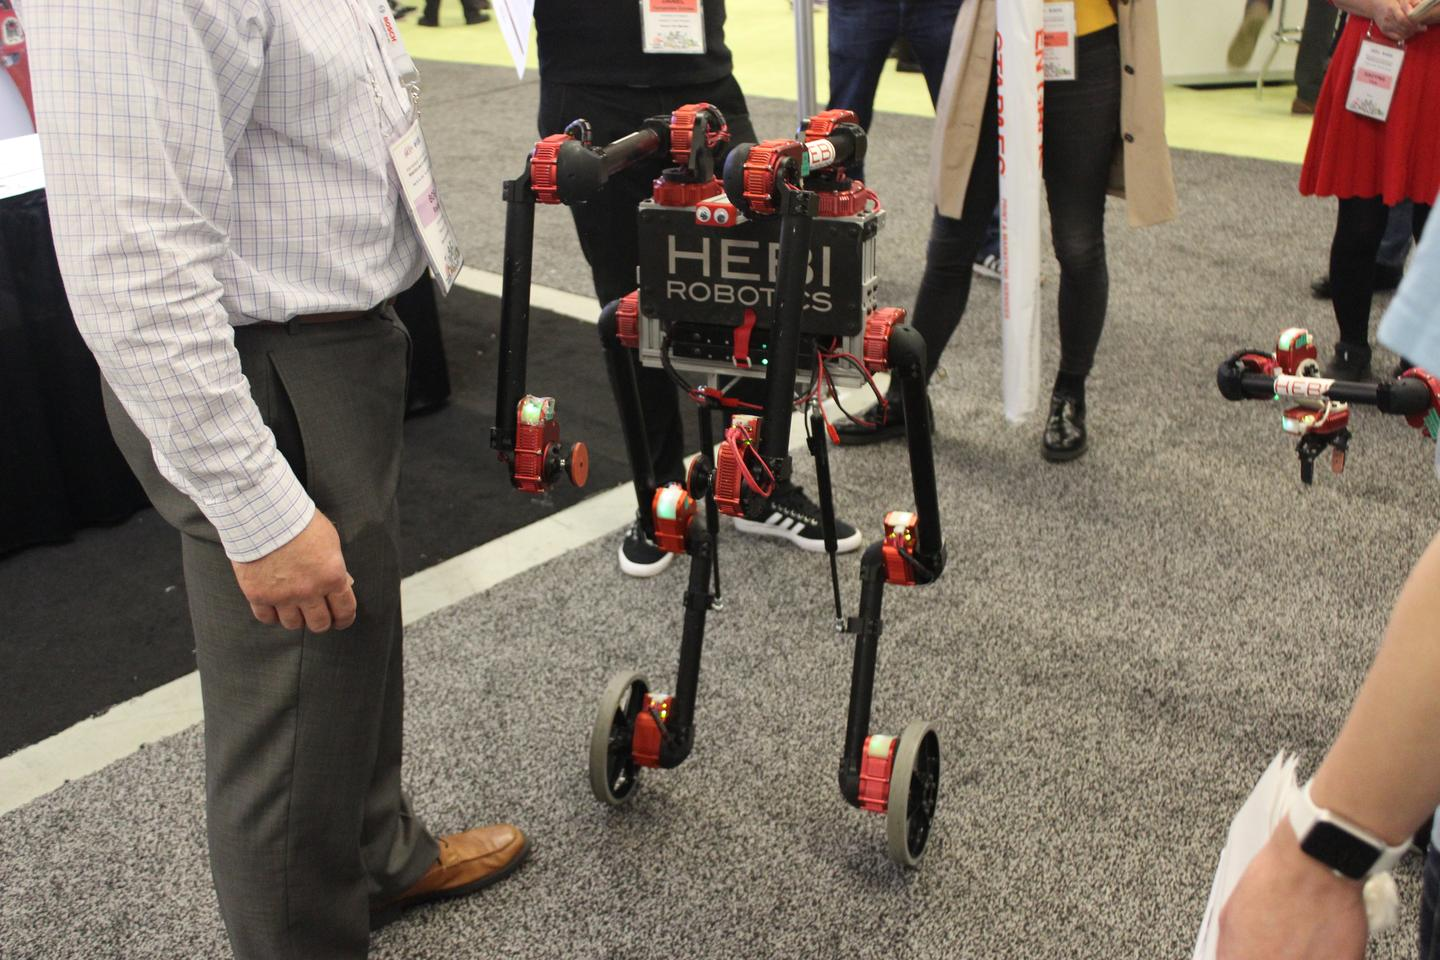 Available as an assemble-it-yourself kit, this machine from HEBI Robotics uses 14 interconnected actuators that control position, torque and velocity, allowing the robot to self-balance itself on two wheels